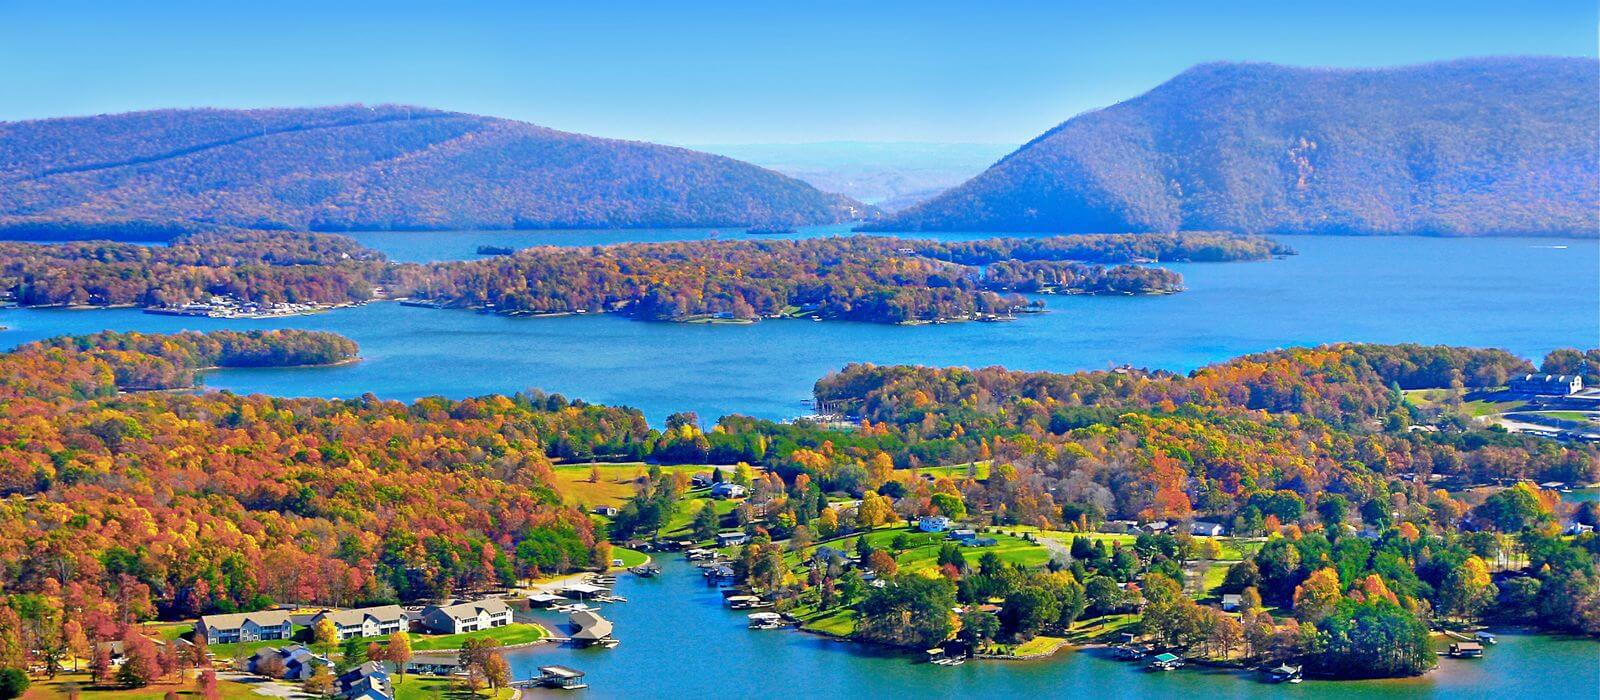 Premier Vacation Rentals Smith Mountain Lake Real Estate Property Management Vacation Rental Company.